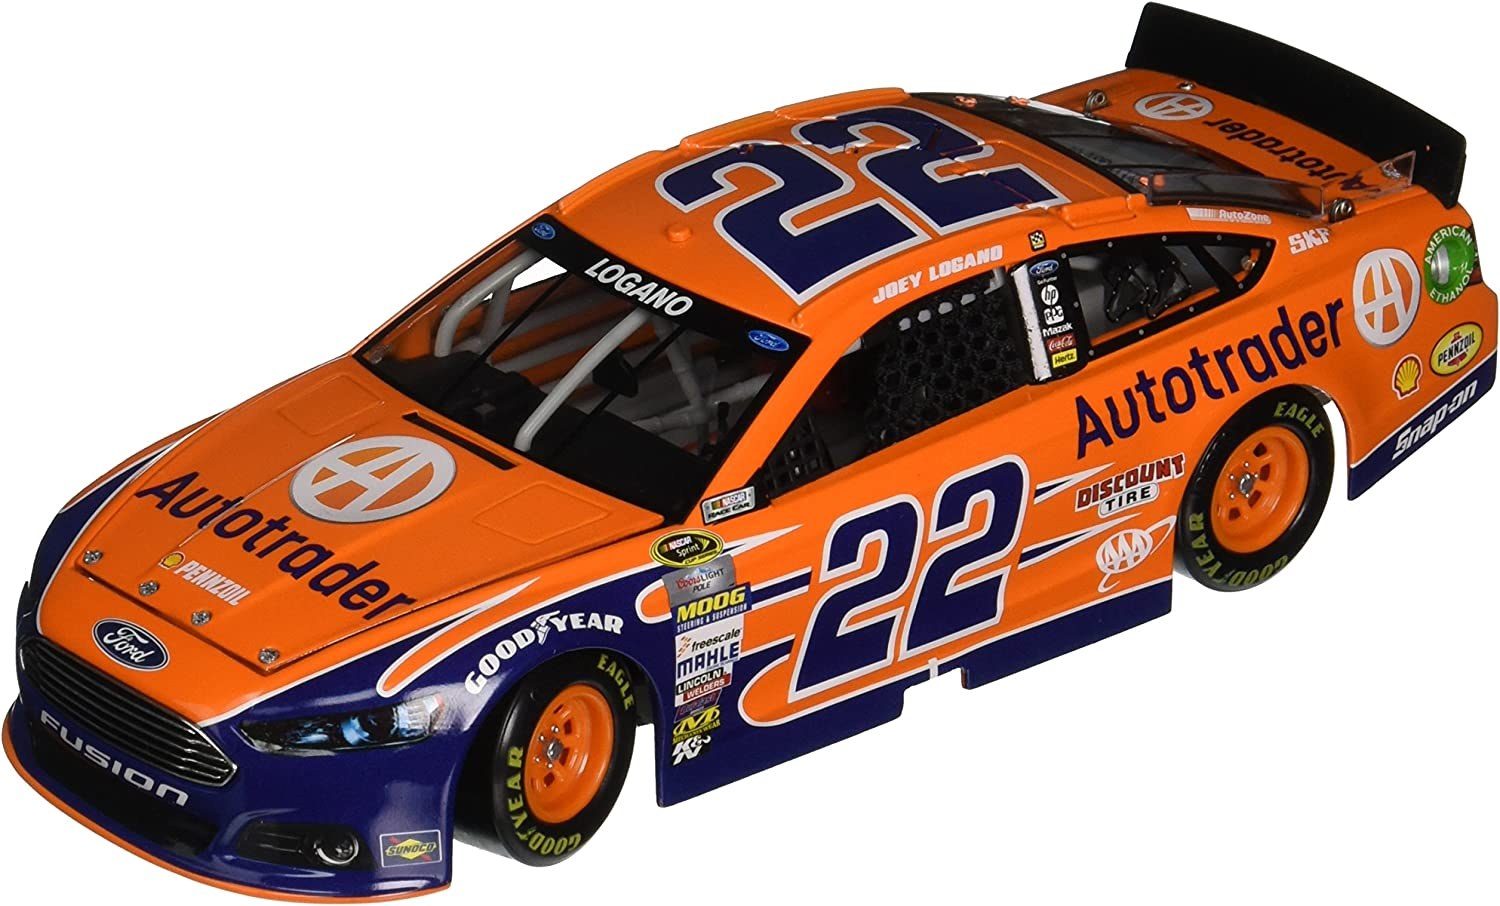 Lionel Racing Joey Logano  22 Autotrader 2015 Ford Fusion 1 24 Scale Die-cast Car